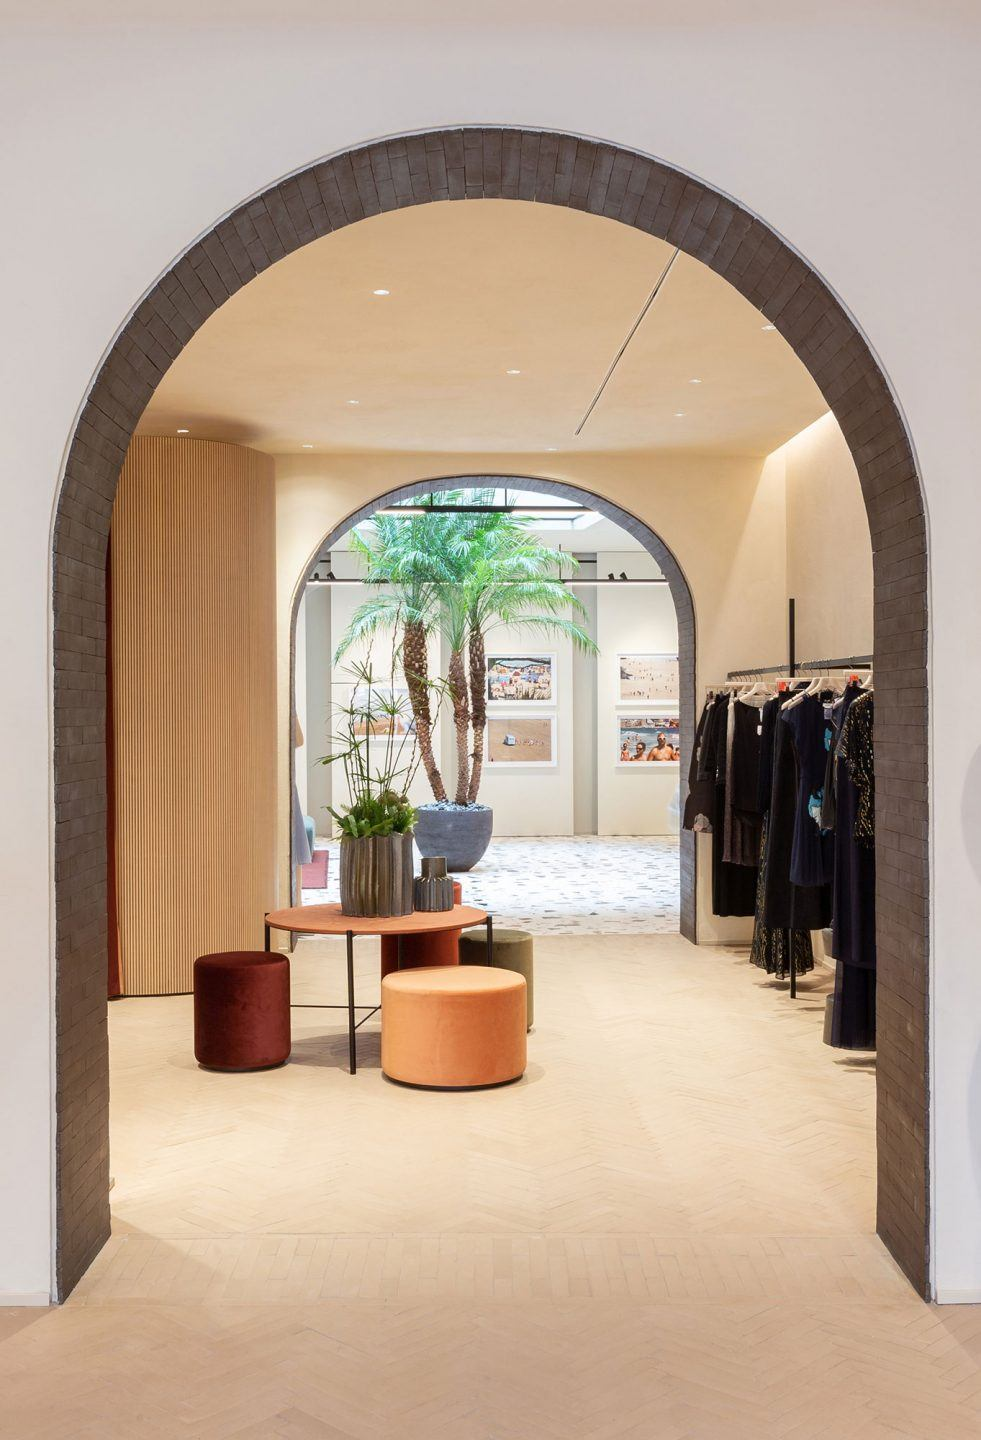 MAX&Co. Concept Store - tables | <strong>MAX&CO. CONCEPT STORE - TABLES</strong> | project <strong>Duccio Grassi Architects</strong> | ph © <strong>Jessica Soffiati, Francesca Iovene</strong>